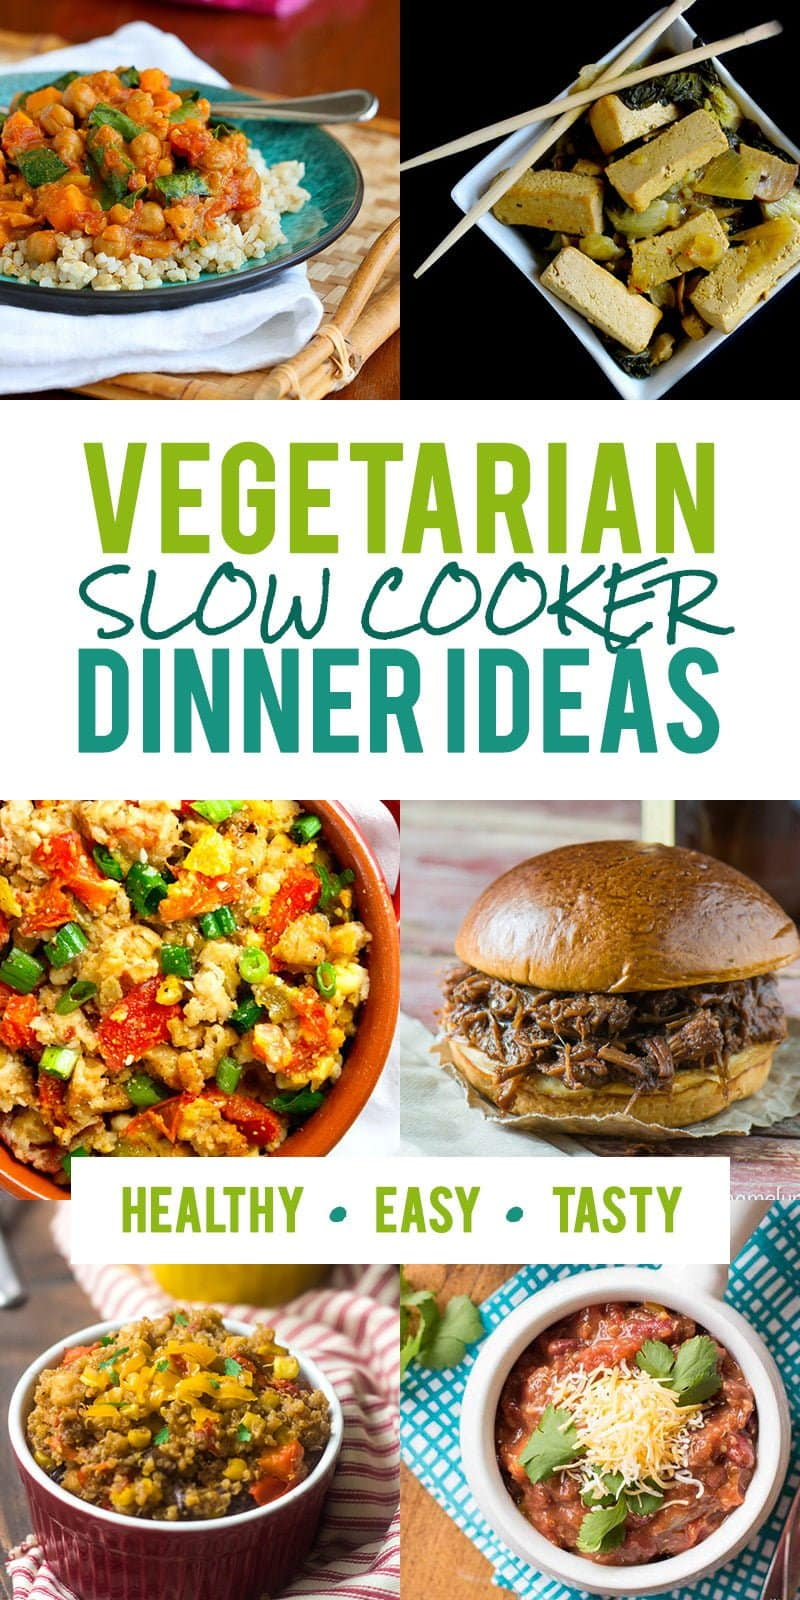 12 vegetarian slow cooker dinner recipes | wholefully